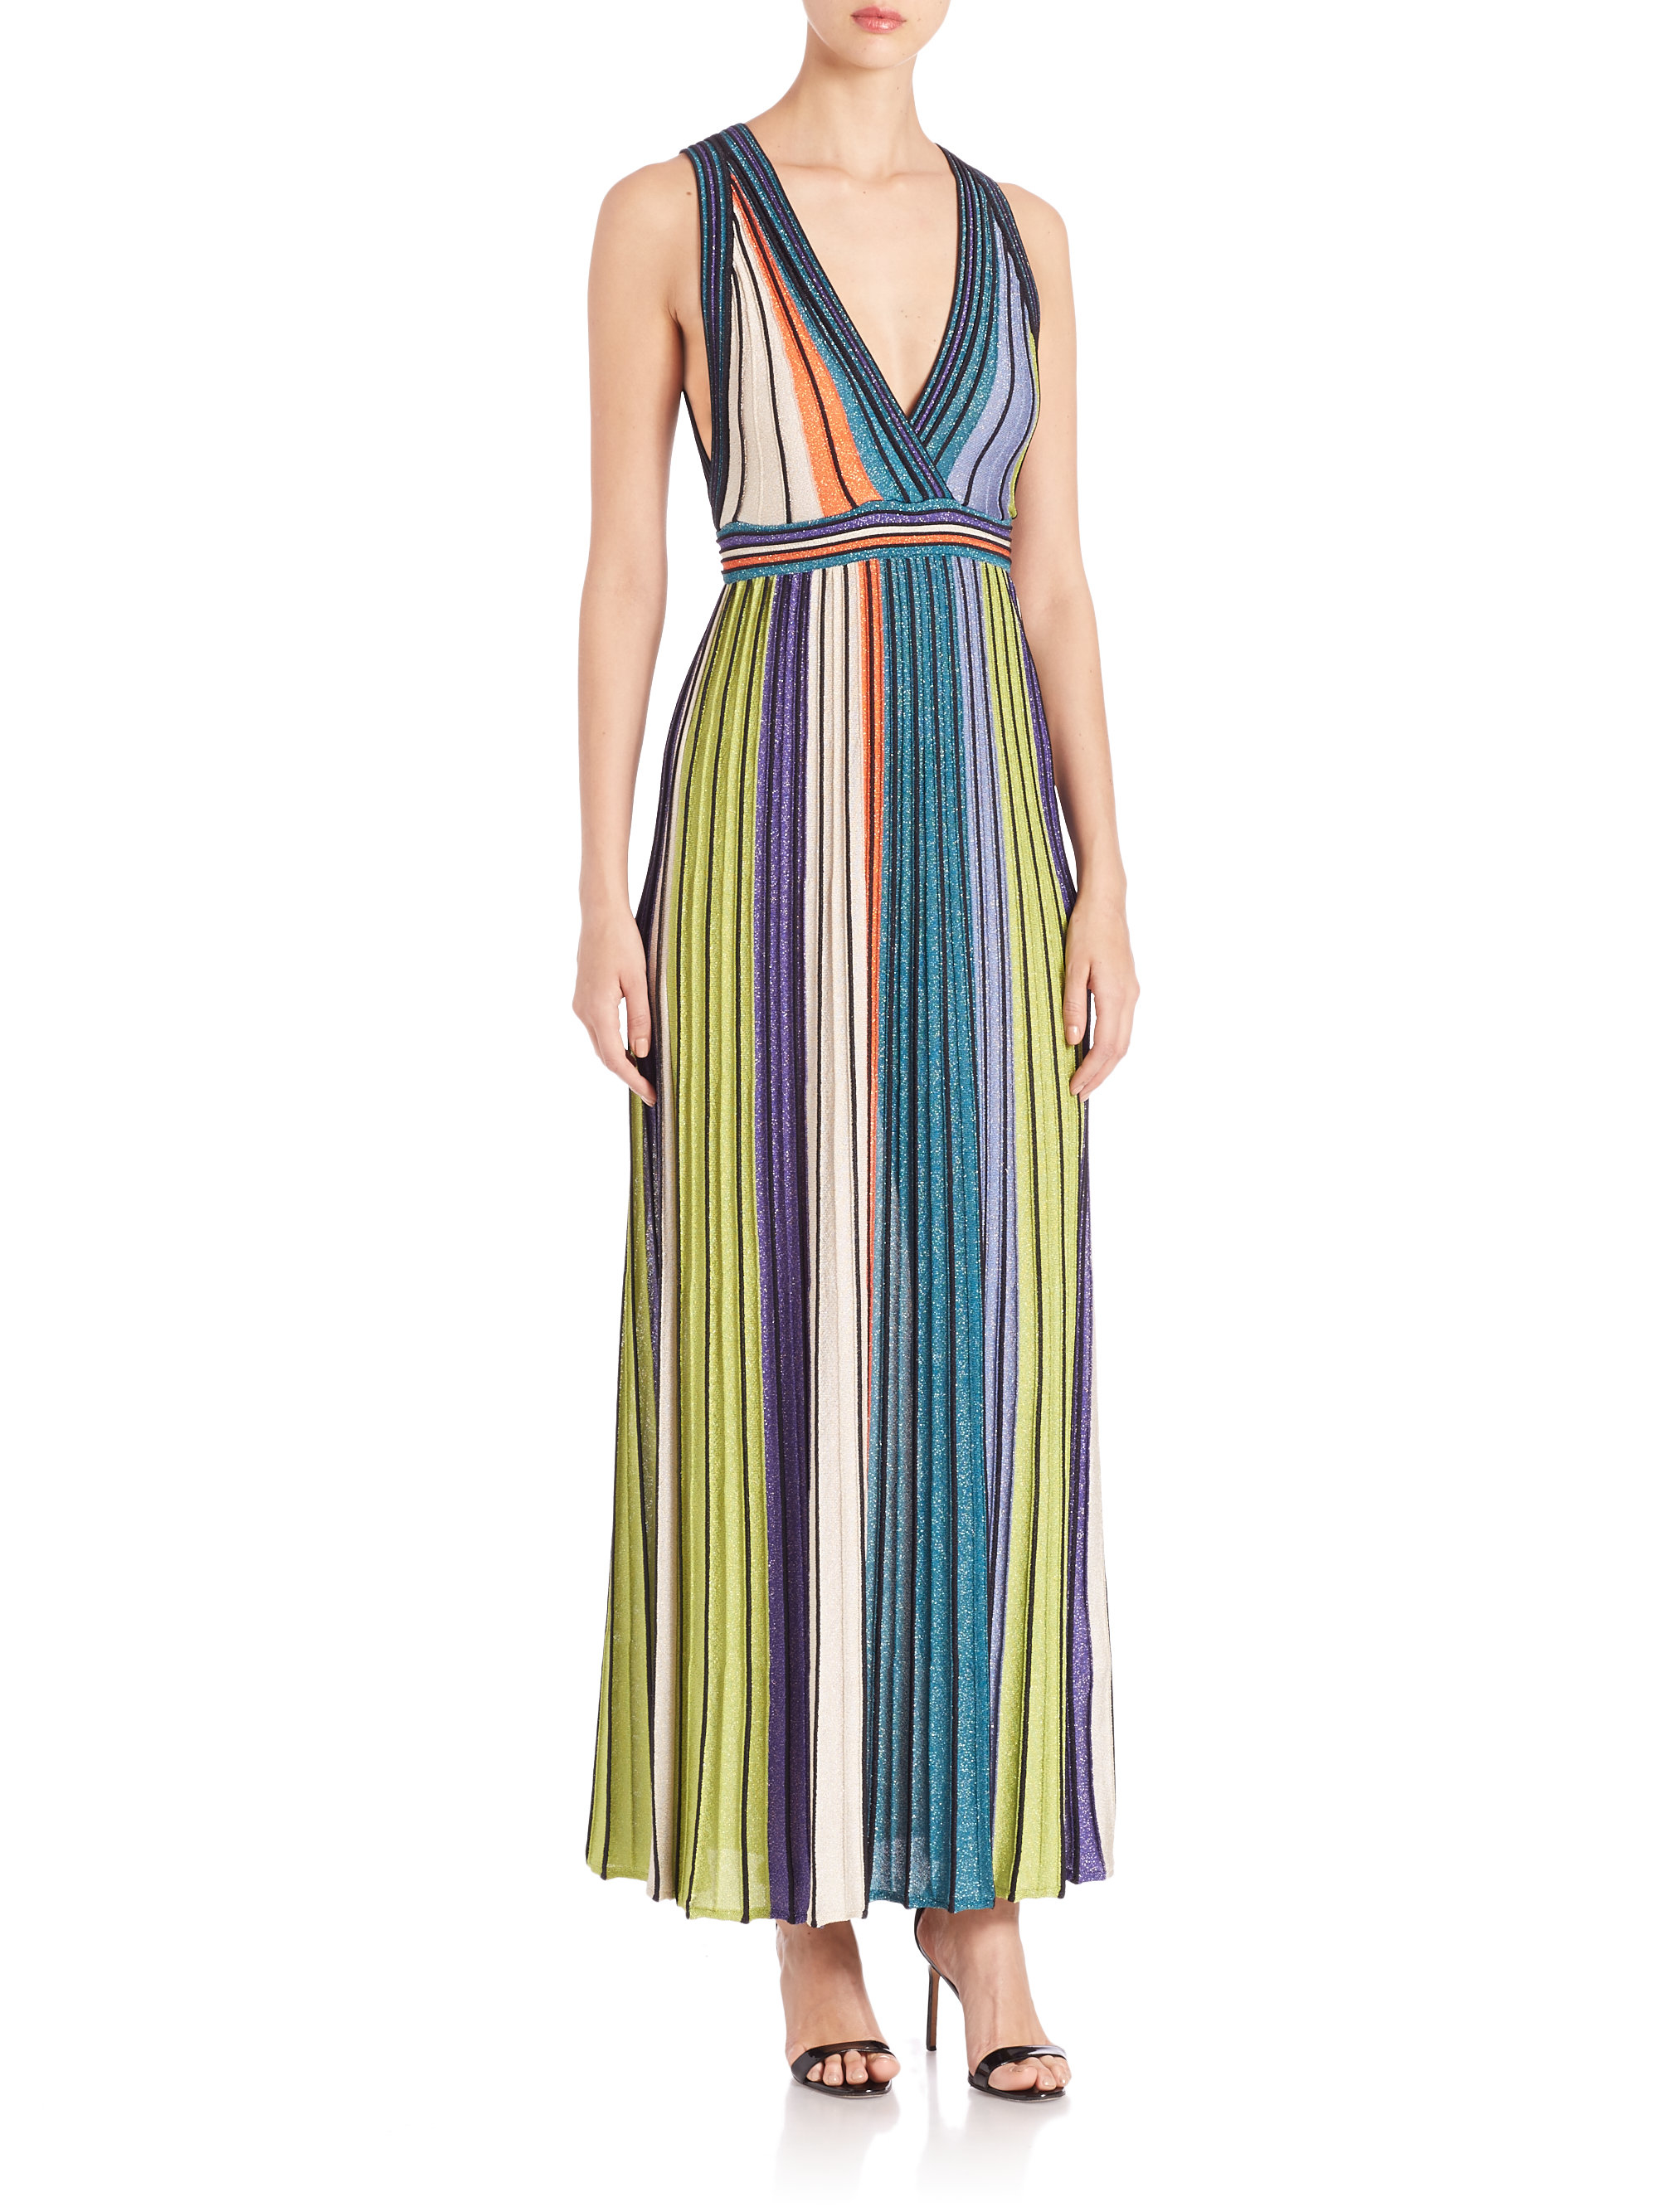 M missoni Metallic-striped Maxi Dress in Blue  Lyst